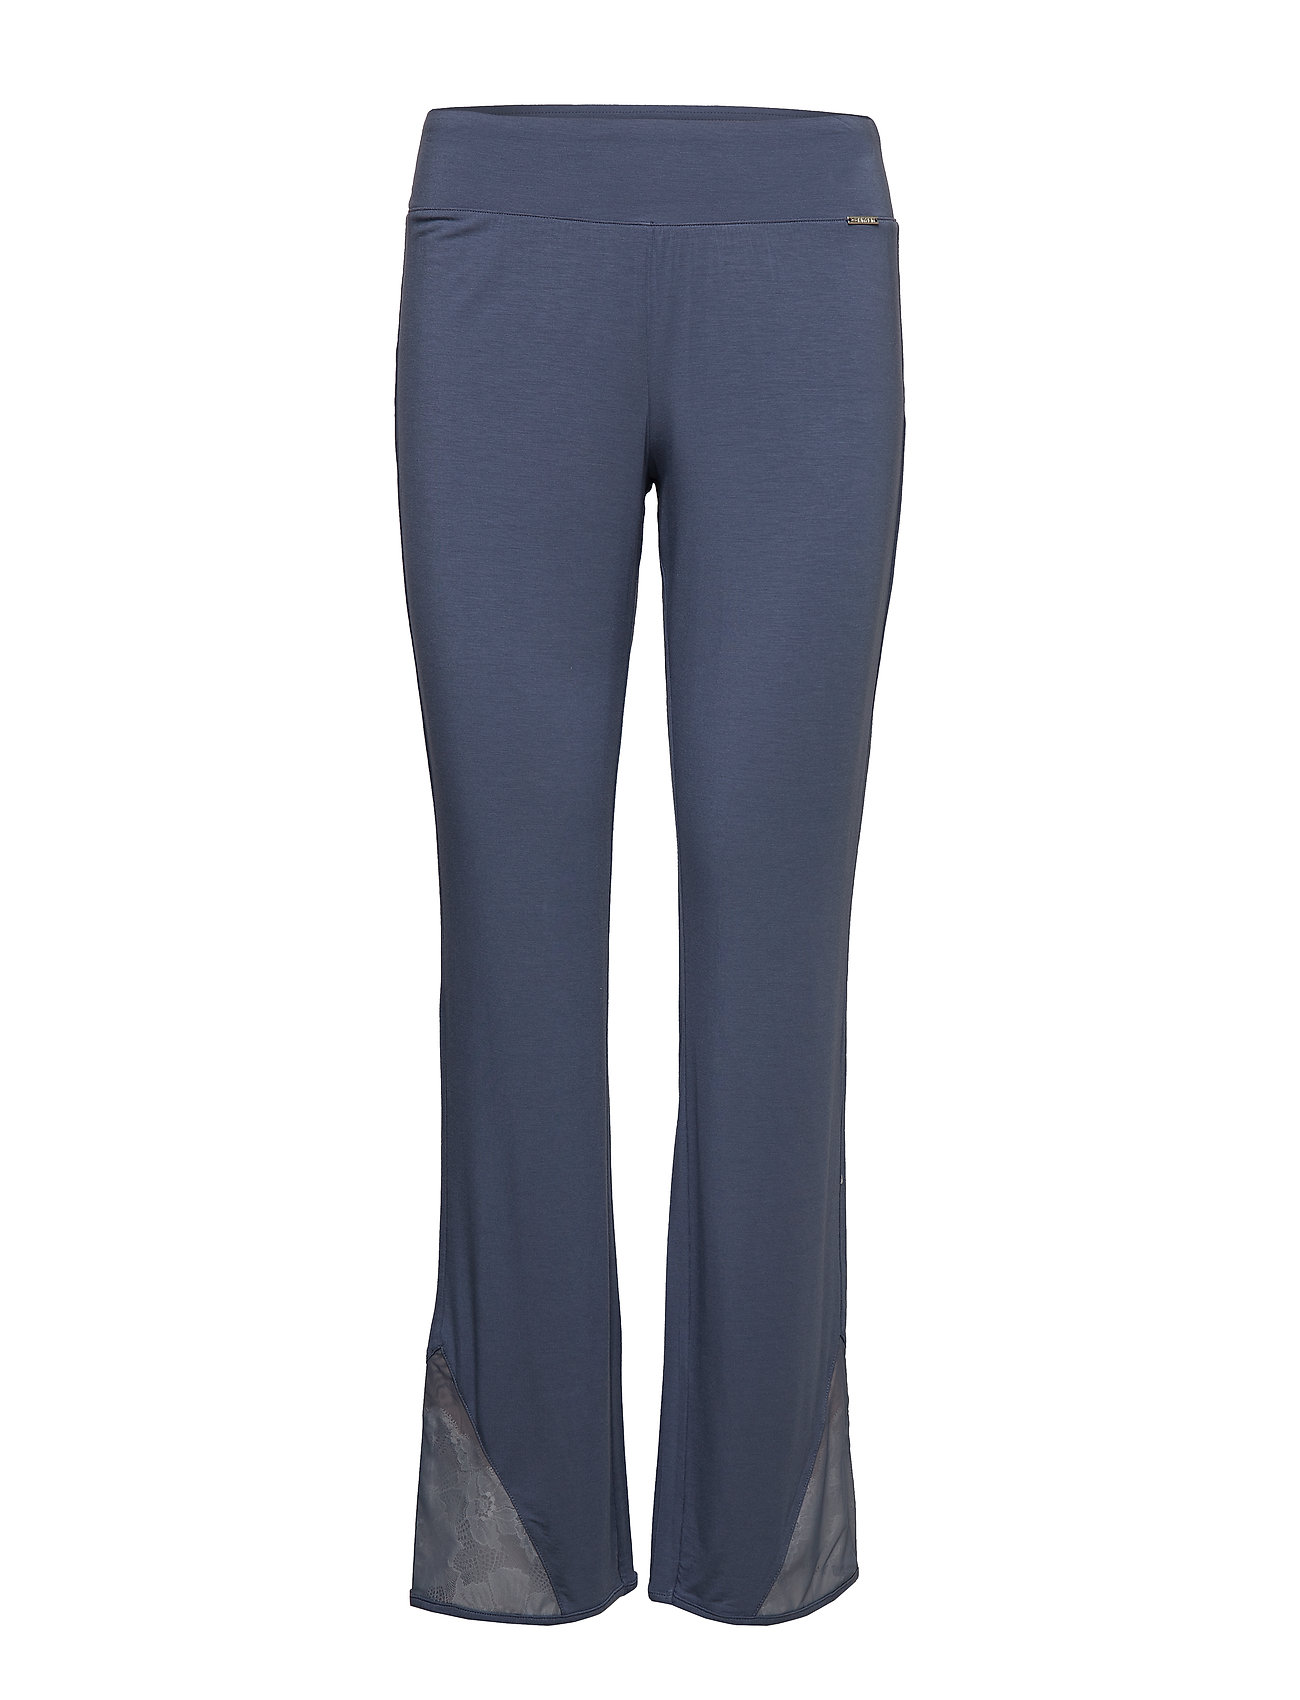 Calvin Klein SLEEP PANT - SCORCHED DENIM